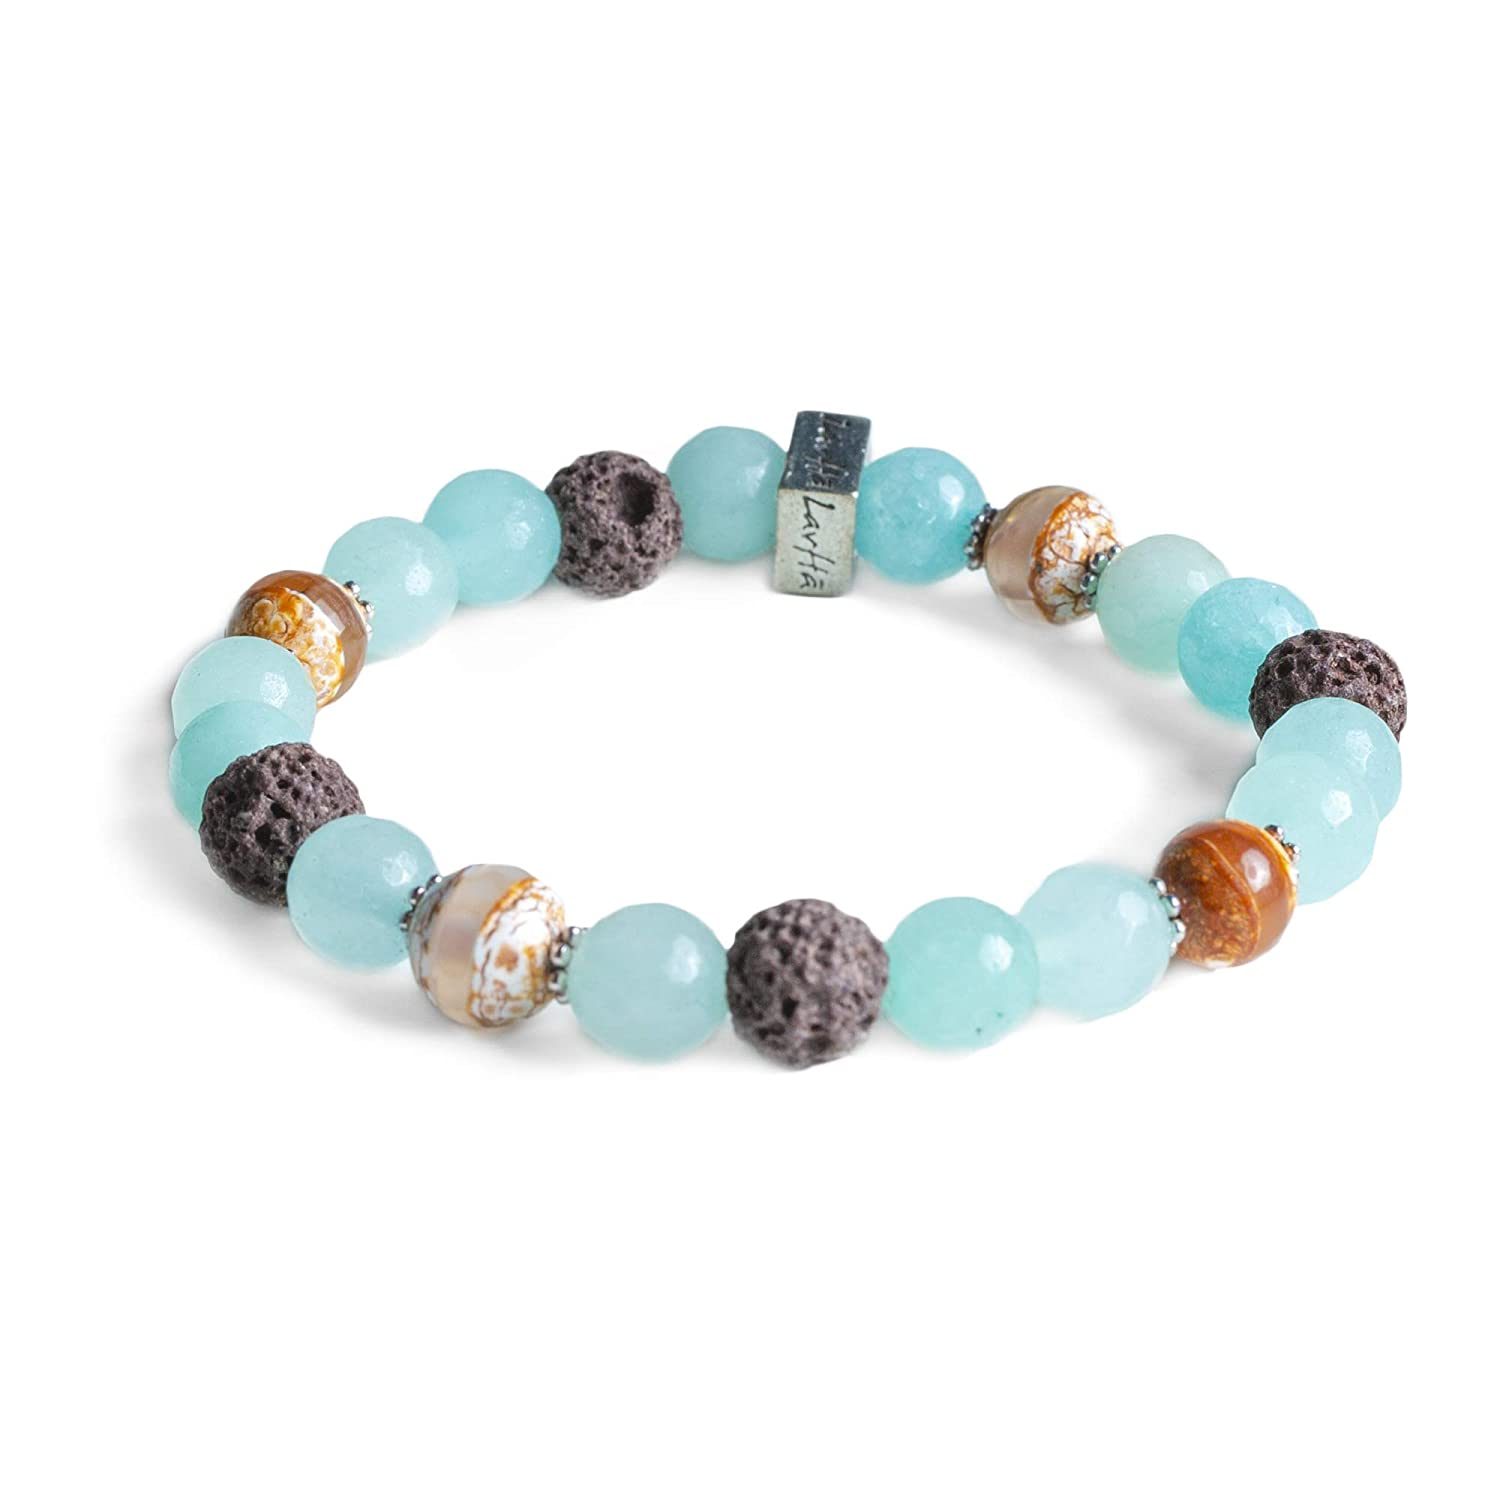 Edens Garden Catalina Essential Oil Lava Bracelet (Best for Diffusion and Aromatherapy Jewelry)